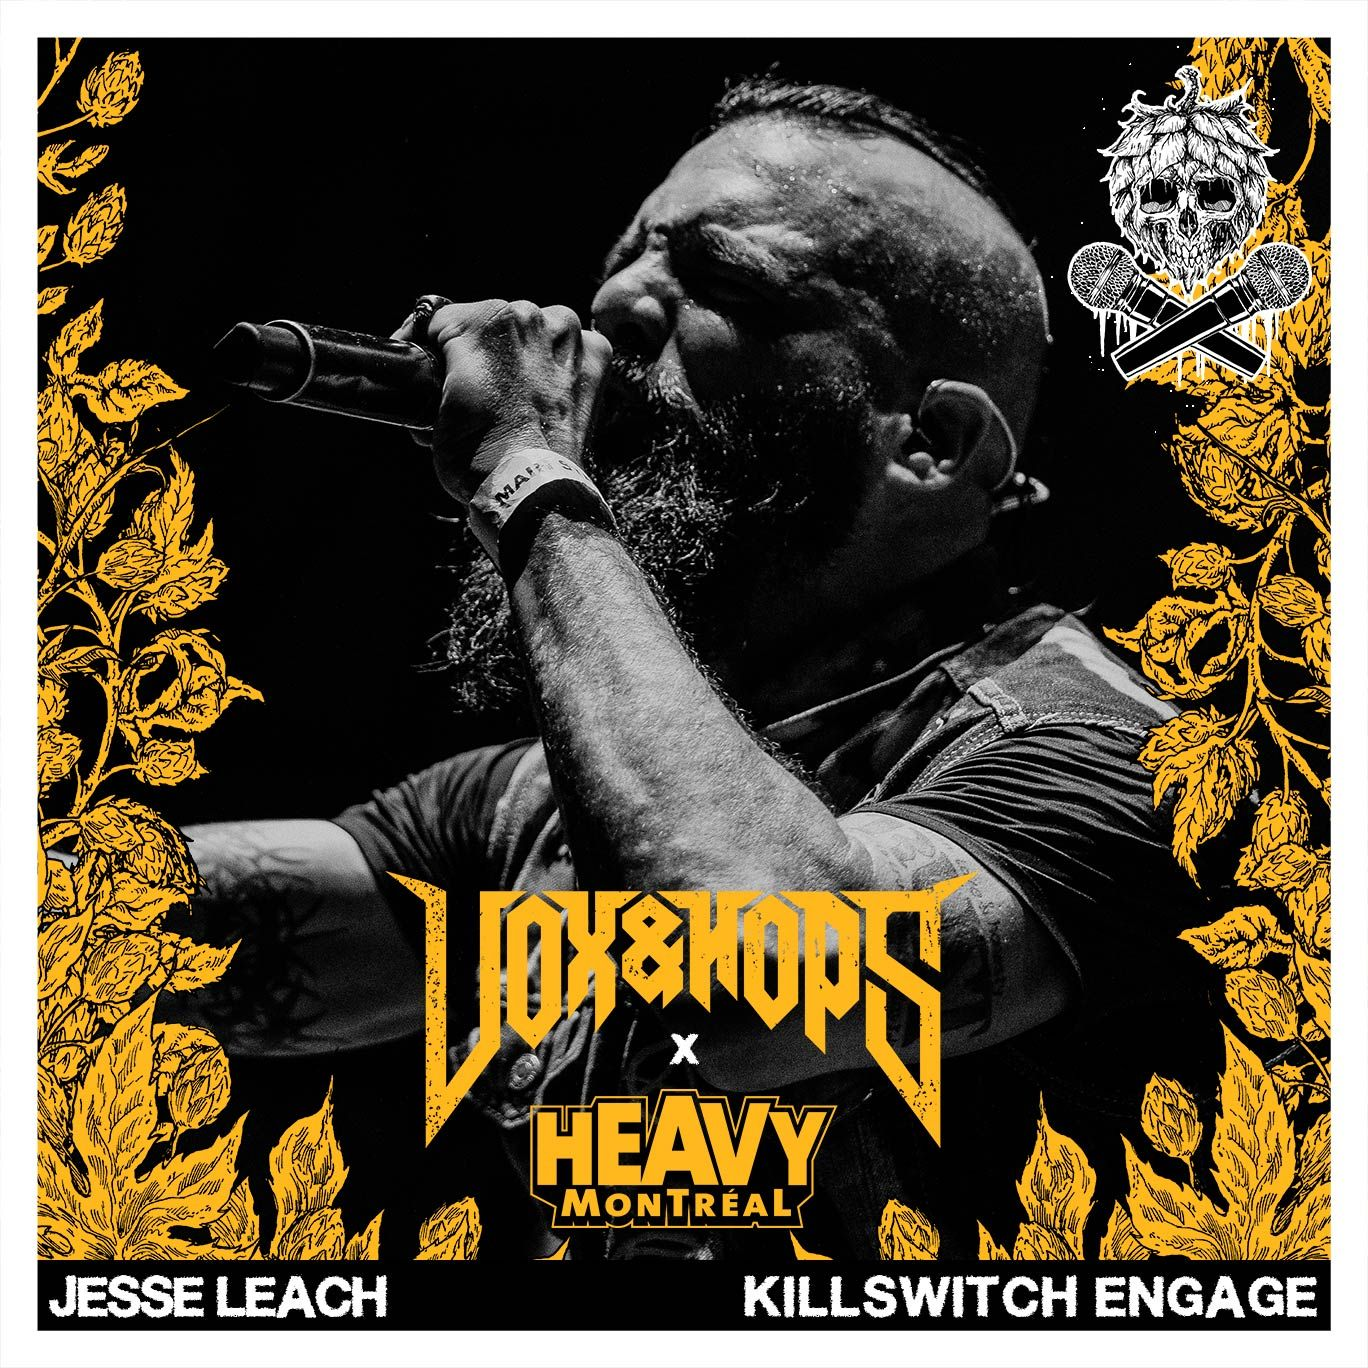 Jesse Leach (Killswitch Engage, Times Of Grace & The Weapon)